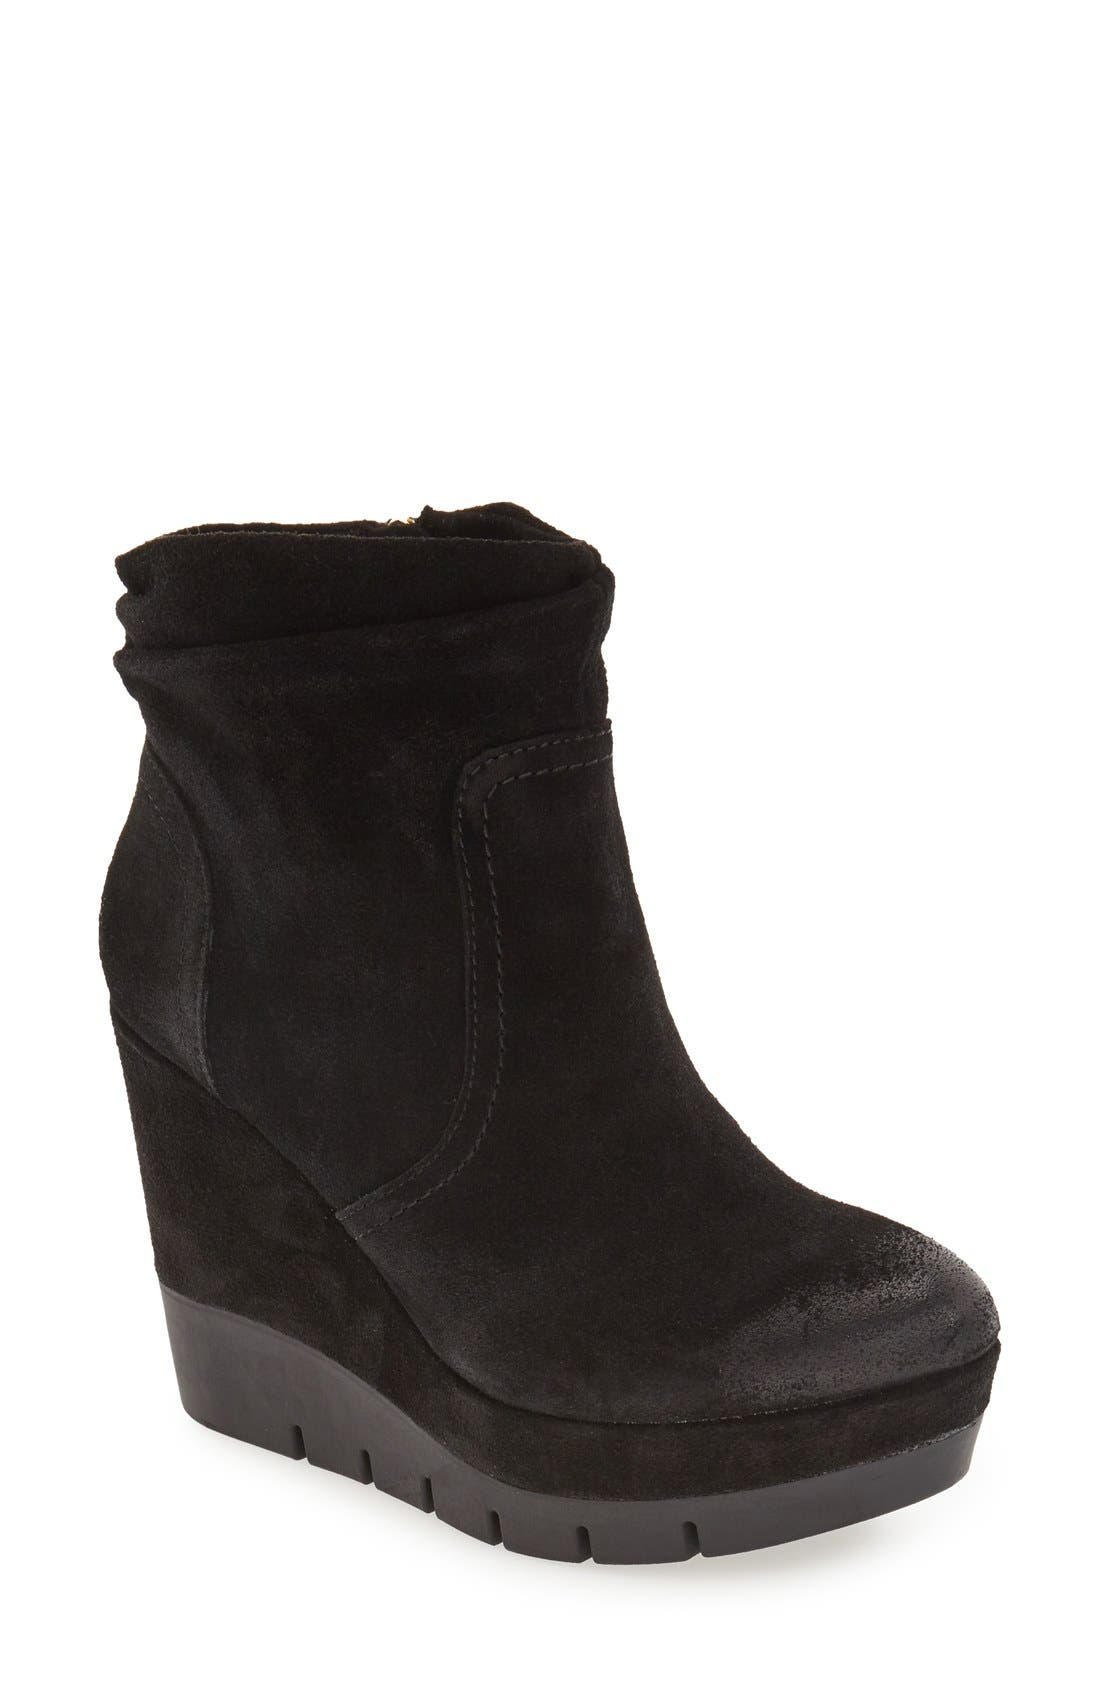 Alternate Image 1 Selected - Isolá Jadyn Wedge Bootie (Women)